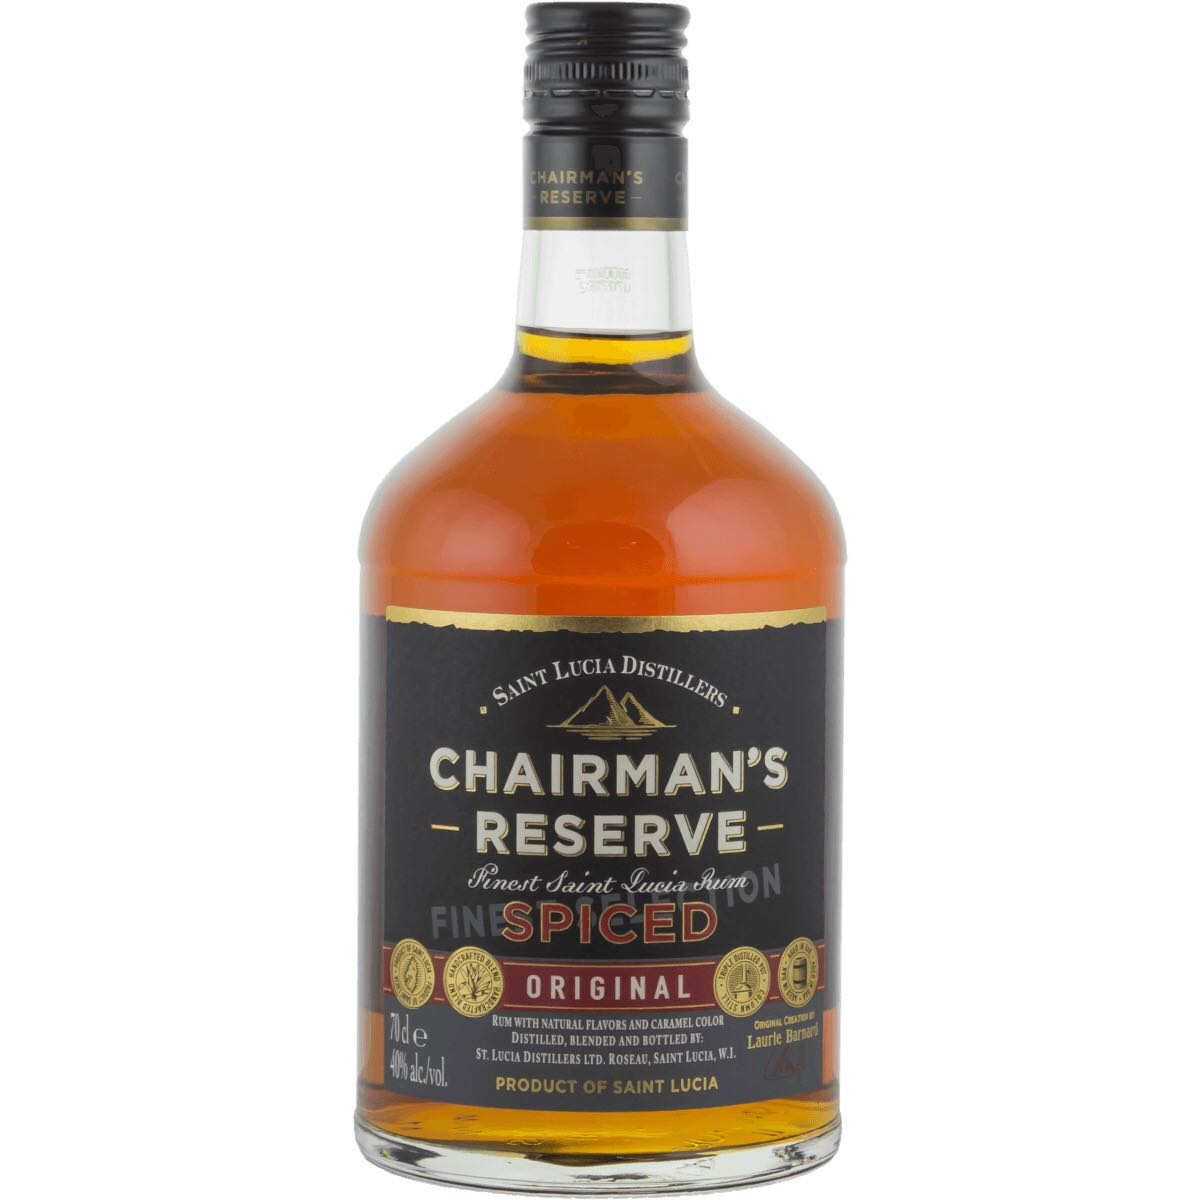 Bottle image of Chairman's Reserve Spiced Original